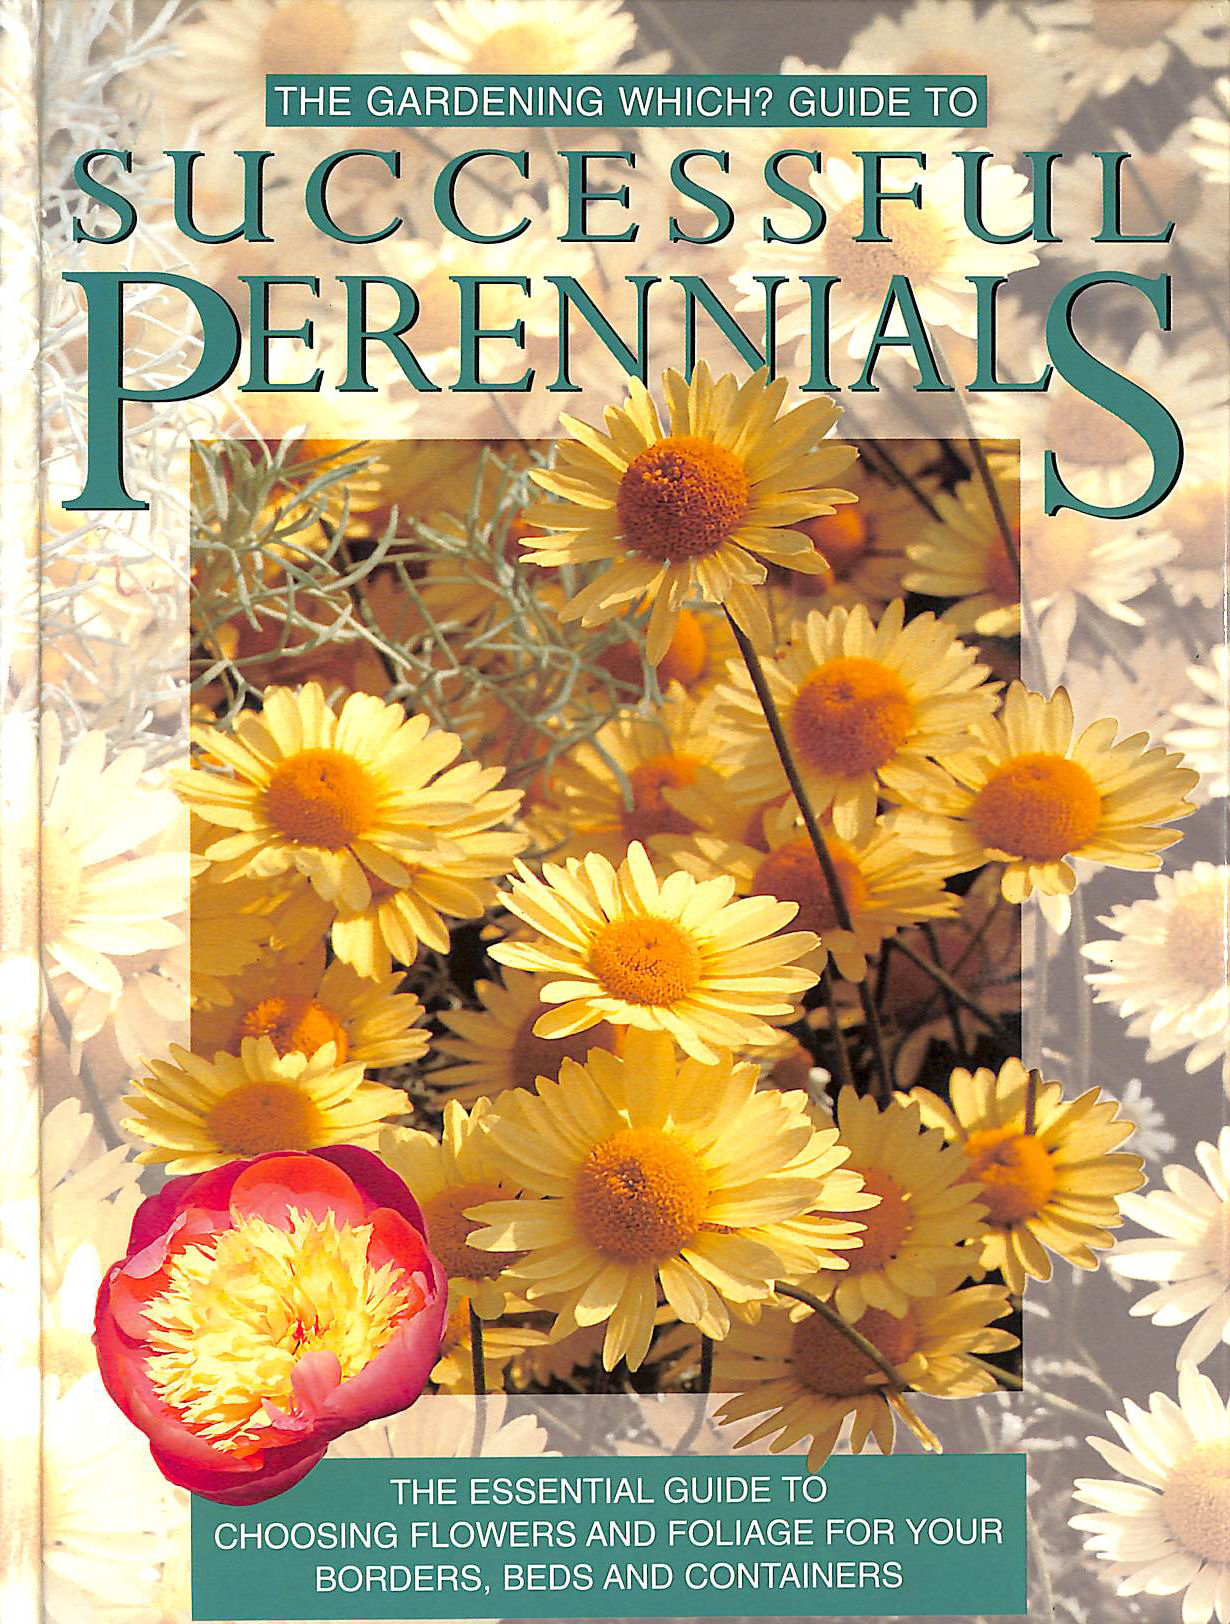 Image for The Gardening Which? Guide to Successful Perennials (Which? Consumer Guides) (Which? Consumer Guides)